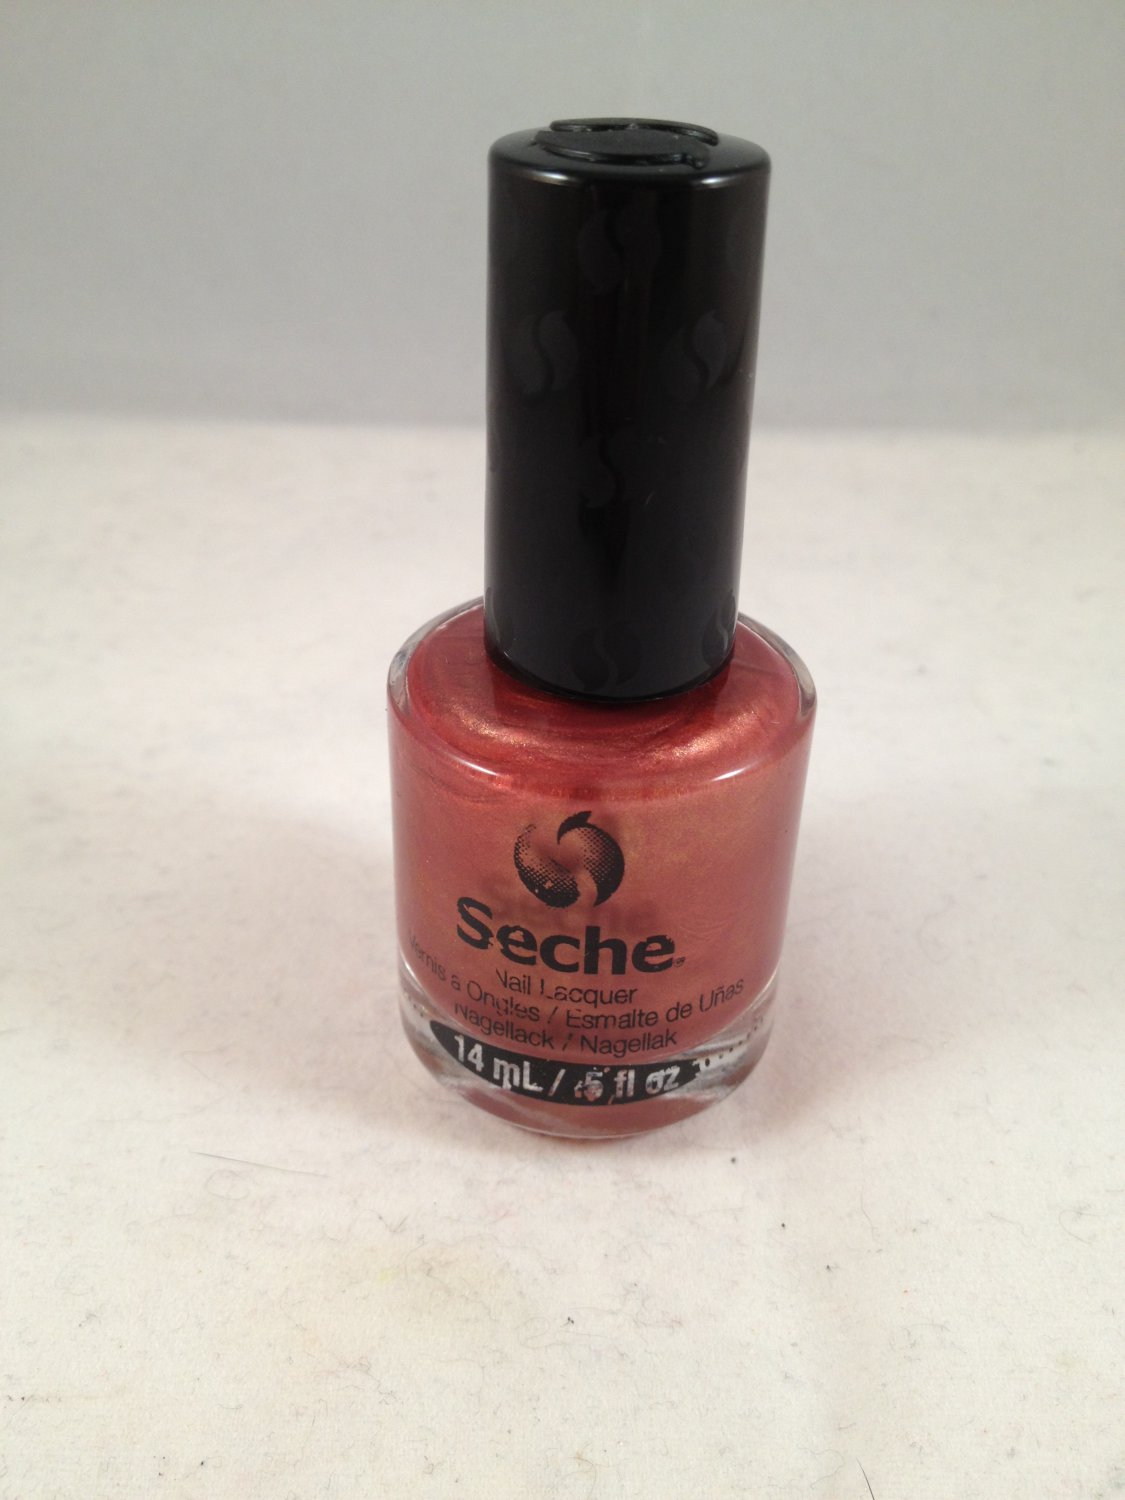 Seche Nail Lacquer Elegant color polish bronze shimmer